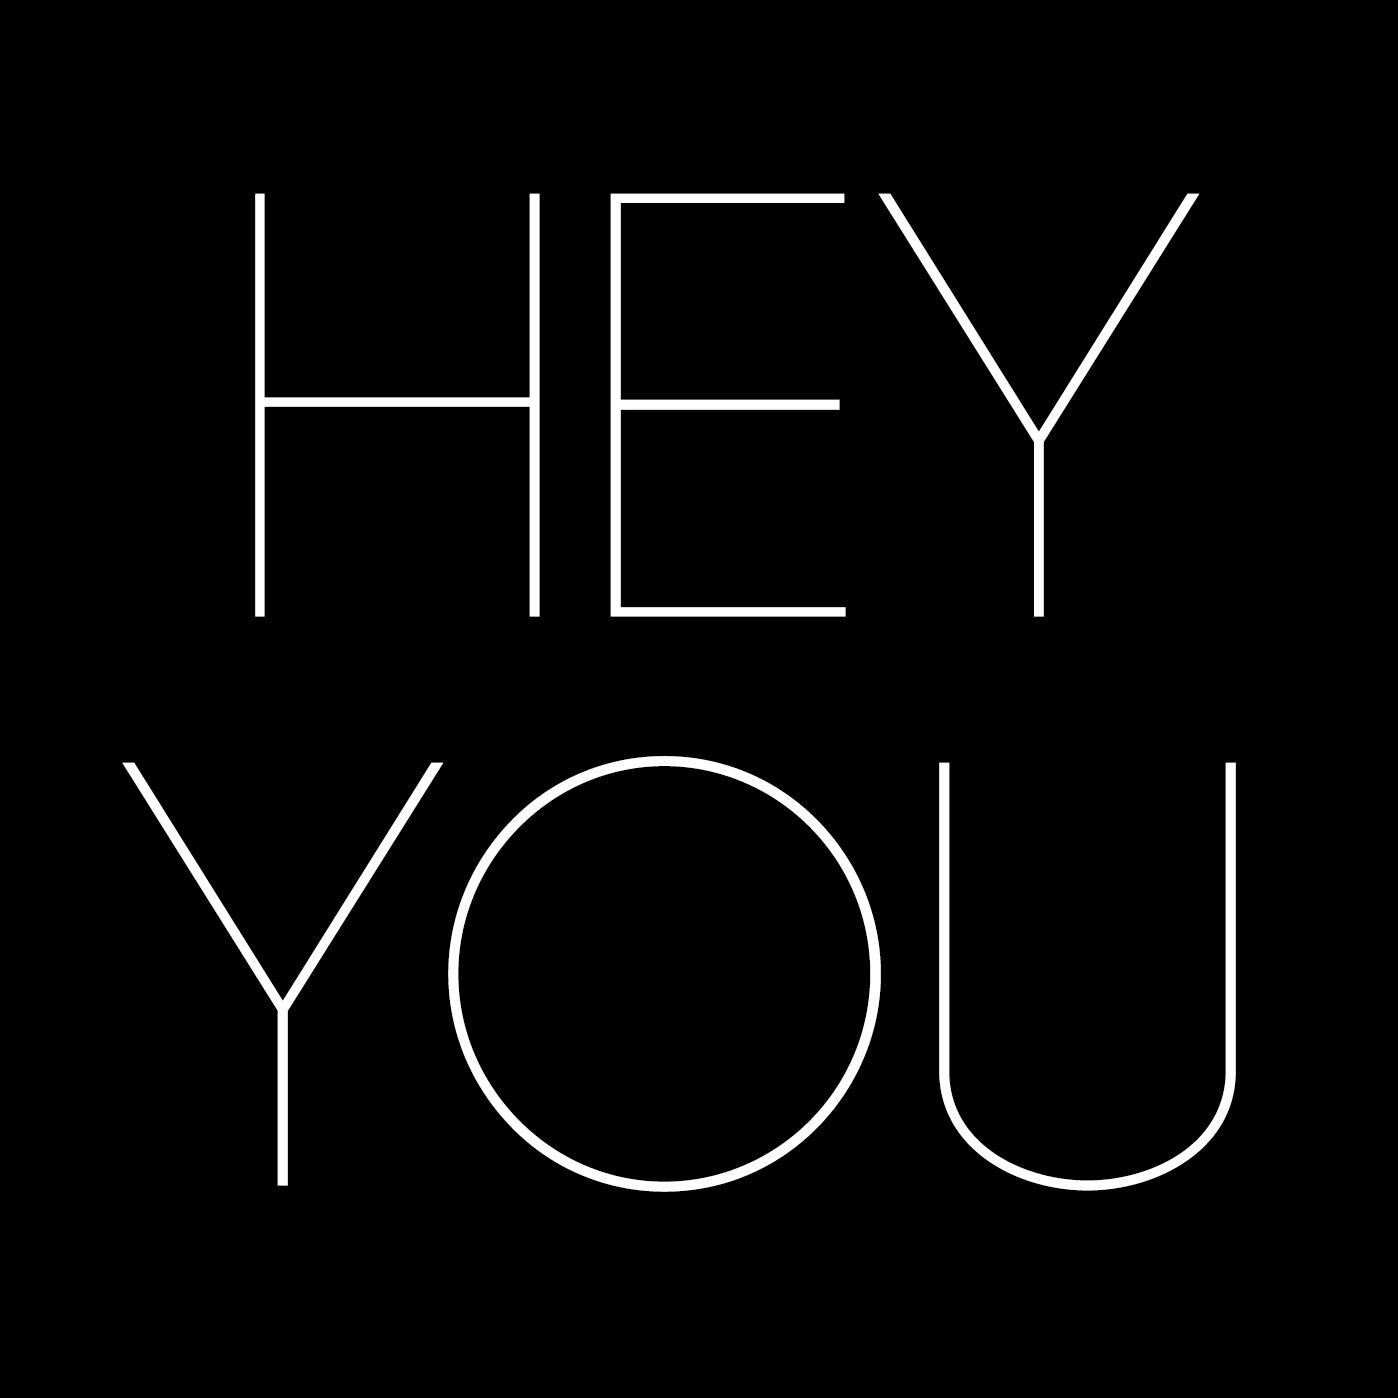 hey you hey you Hey you's profile including the latest music, albums, songs, music videos and more updates.